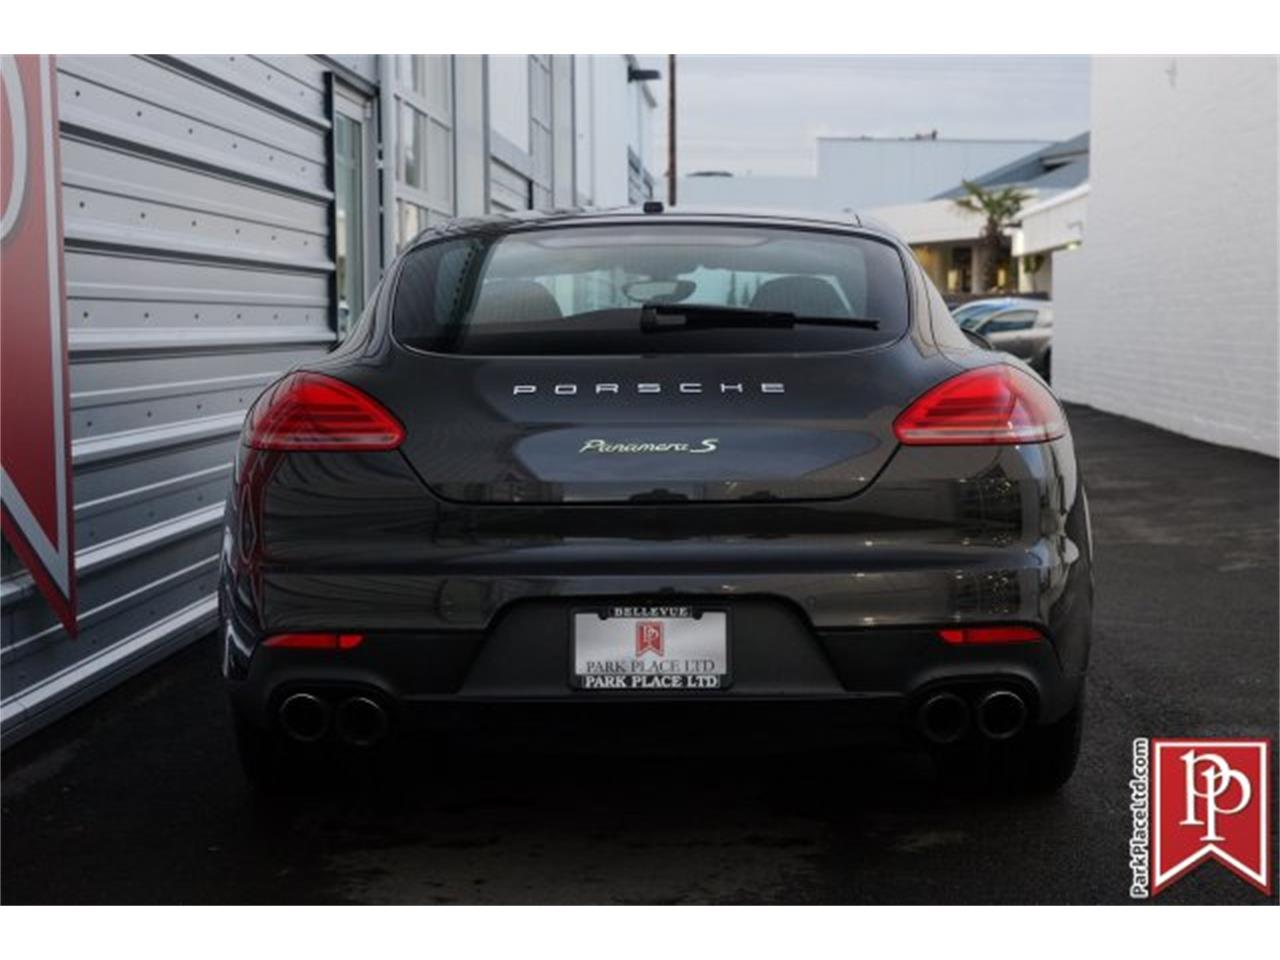 Large Picture of '15 Porsche Panamera Offered by Park Place Ltd - M7QY